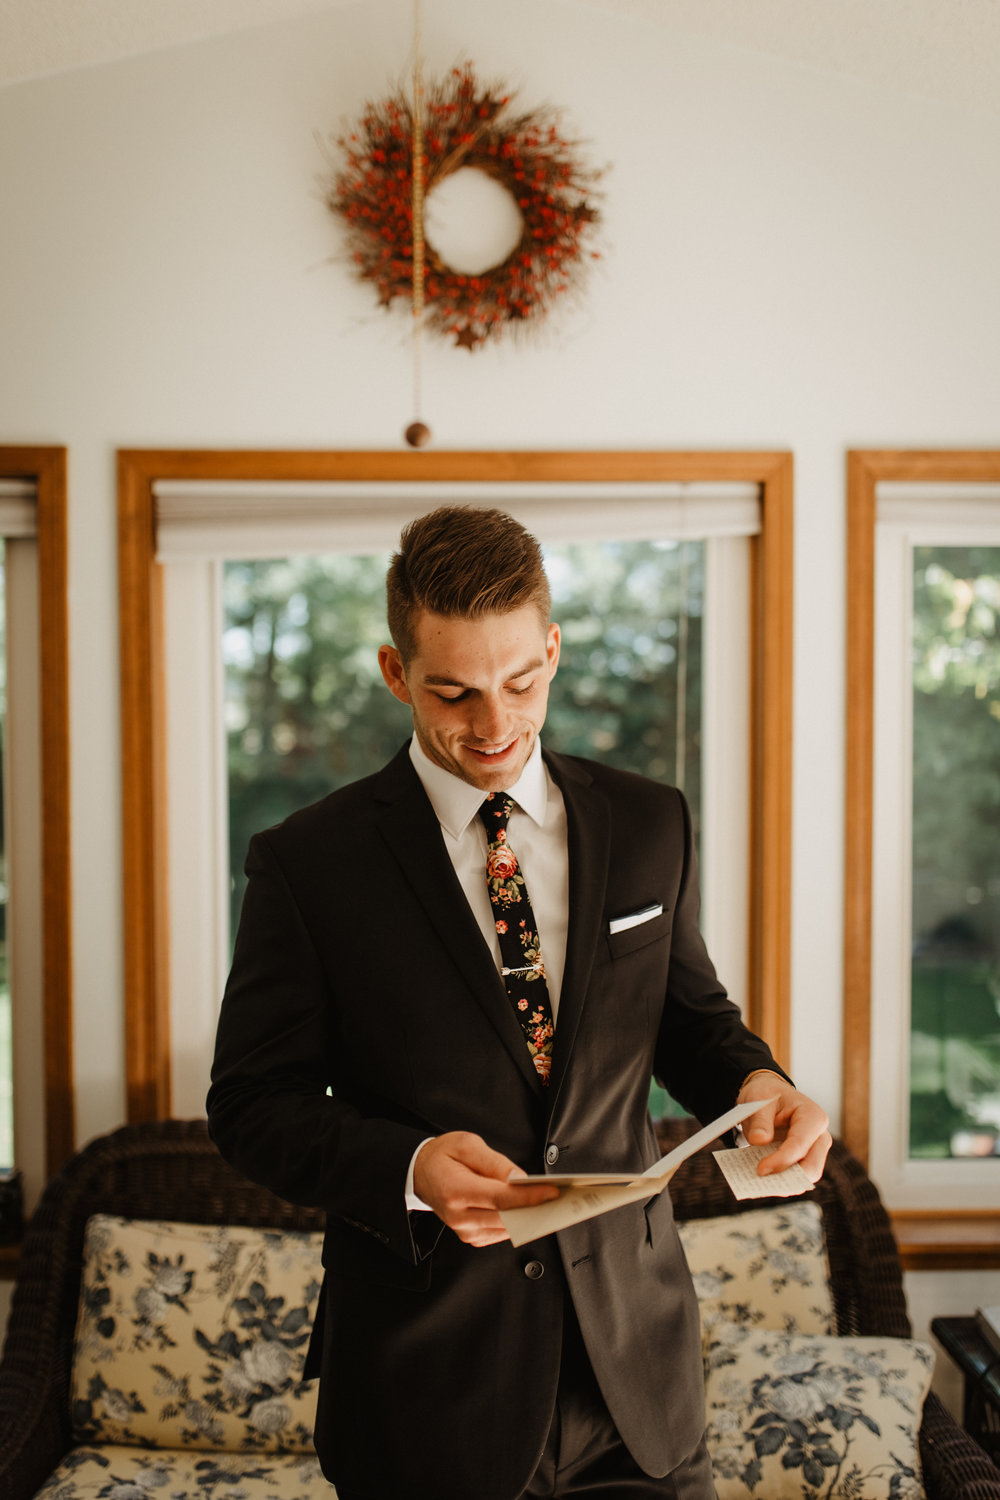 Groom-Wedding-Letter-Photo-02